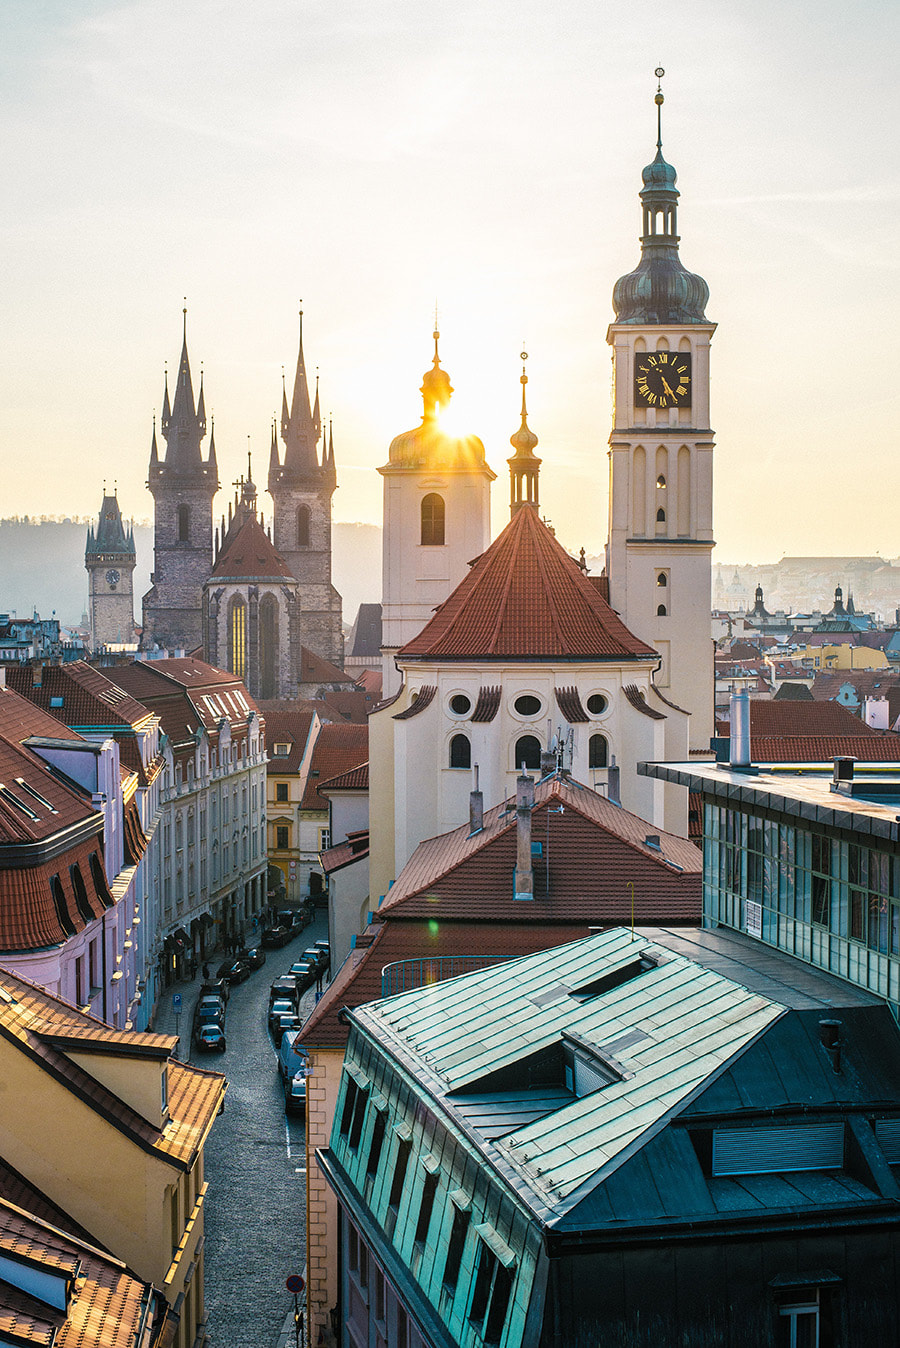 The sun peeks through the stunning architecture of Prague, Czech Republic